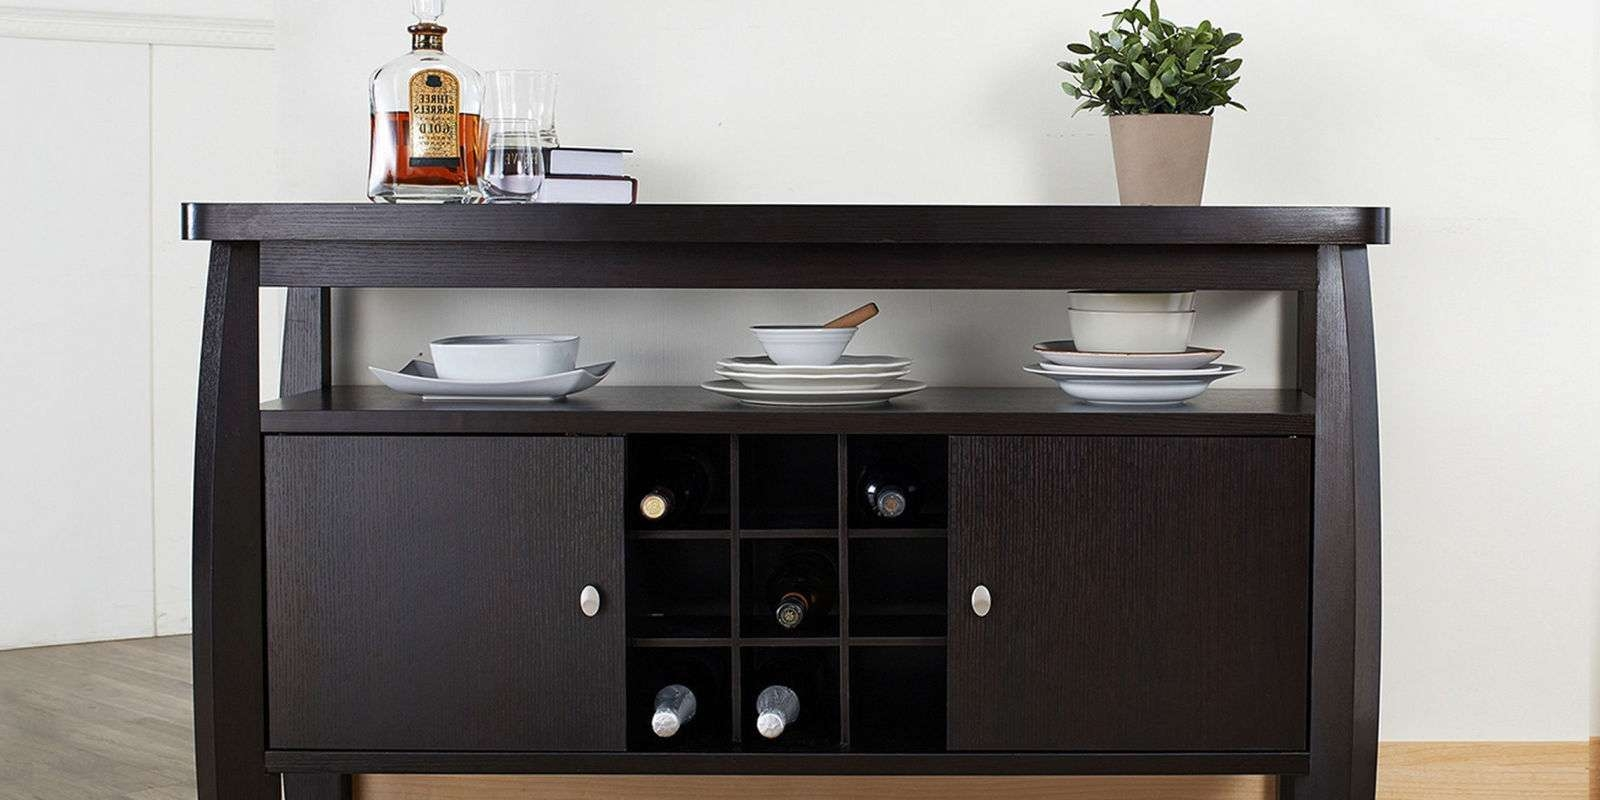 11 Best Sideboards And Buffets In 2018 – Reviews Of Sideboards Pertaining To Espresso Sideboards (Gallery 2 of 20)